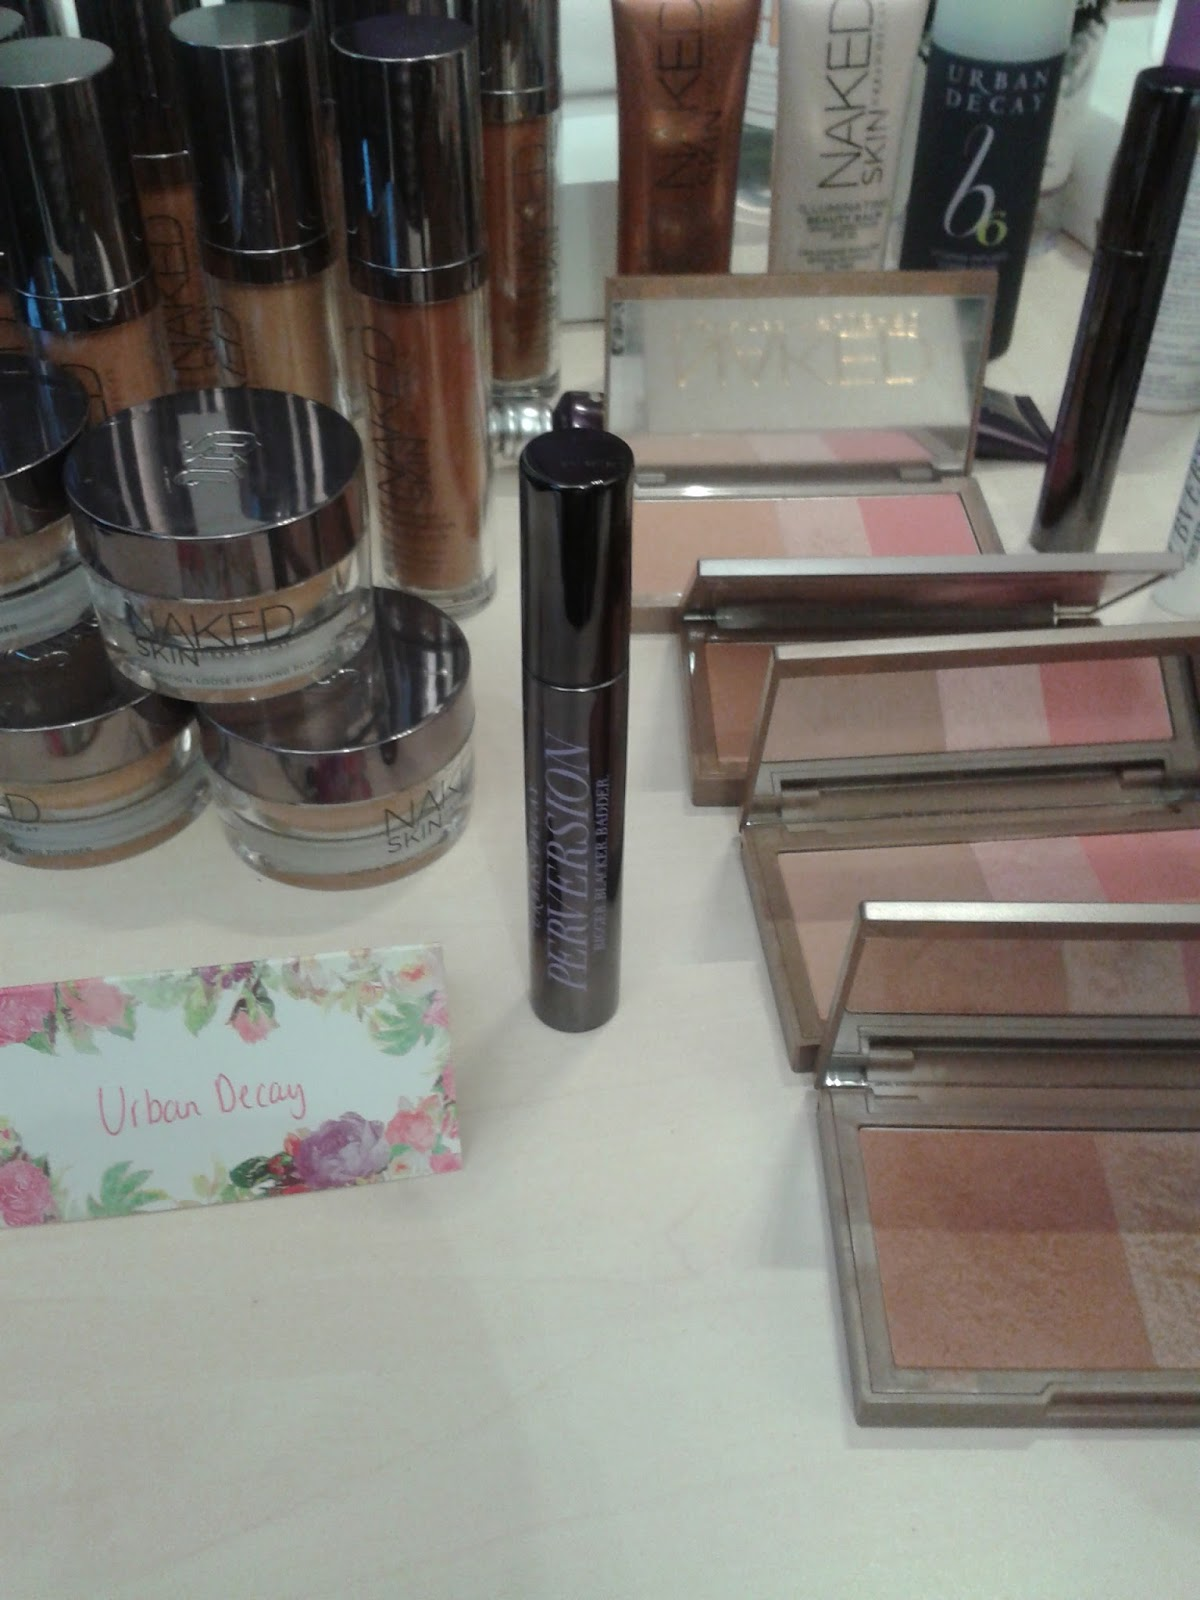 Urban decay lash perversion